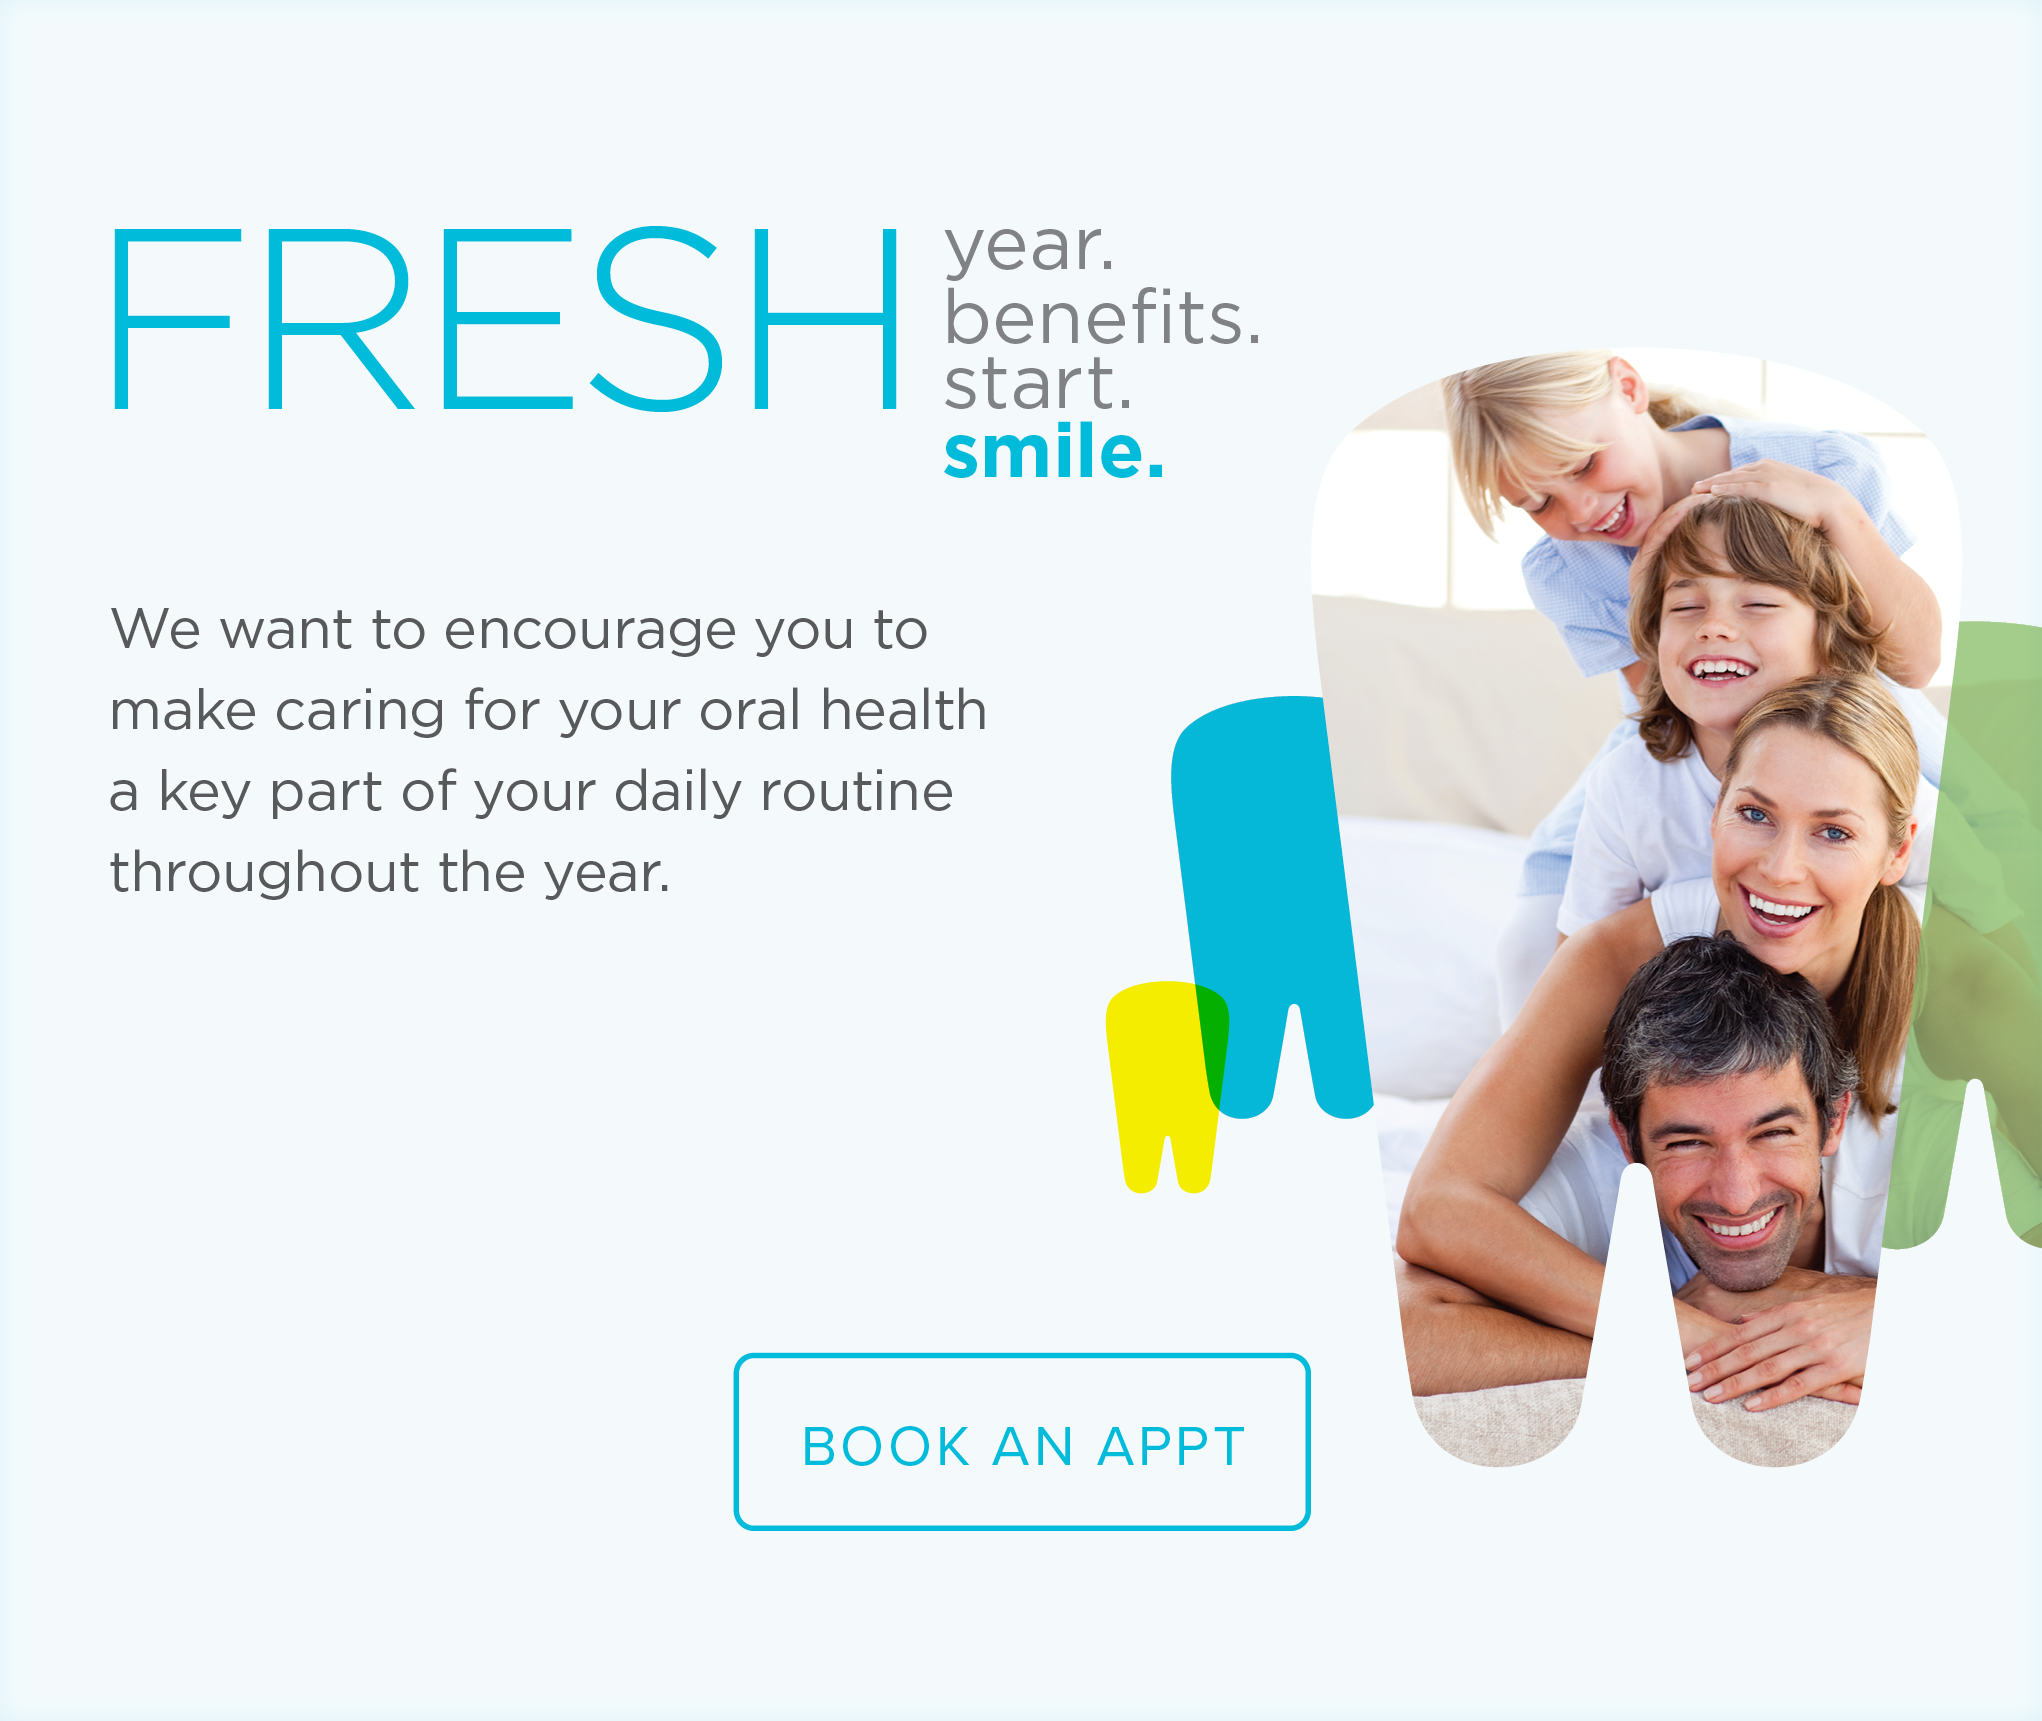 Summerwood Smiles Dentistry and Orthodontics - Make the Most of Your Benefits